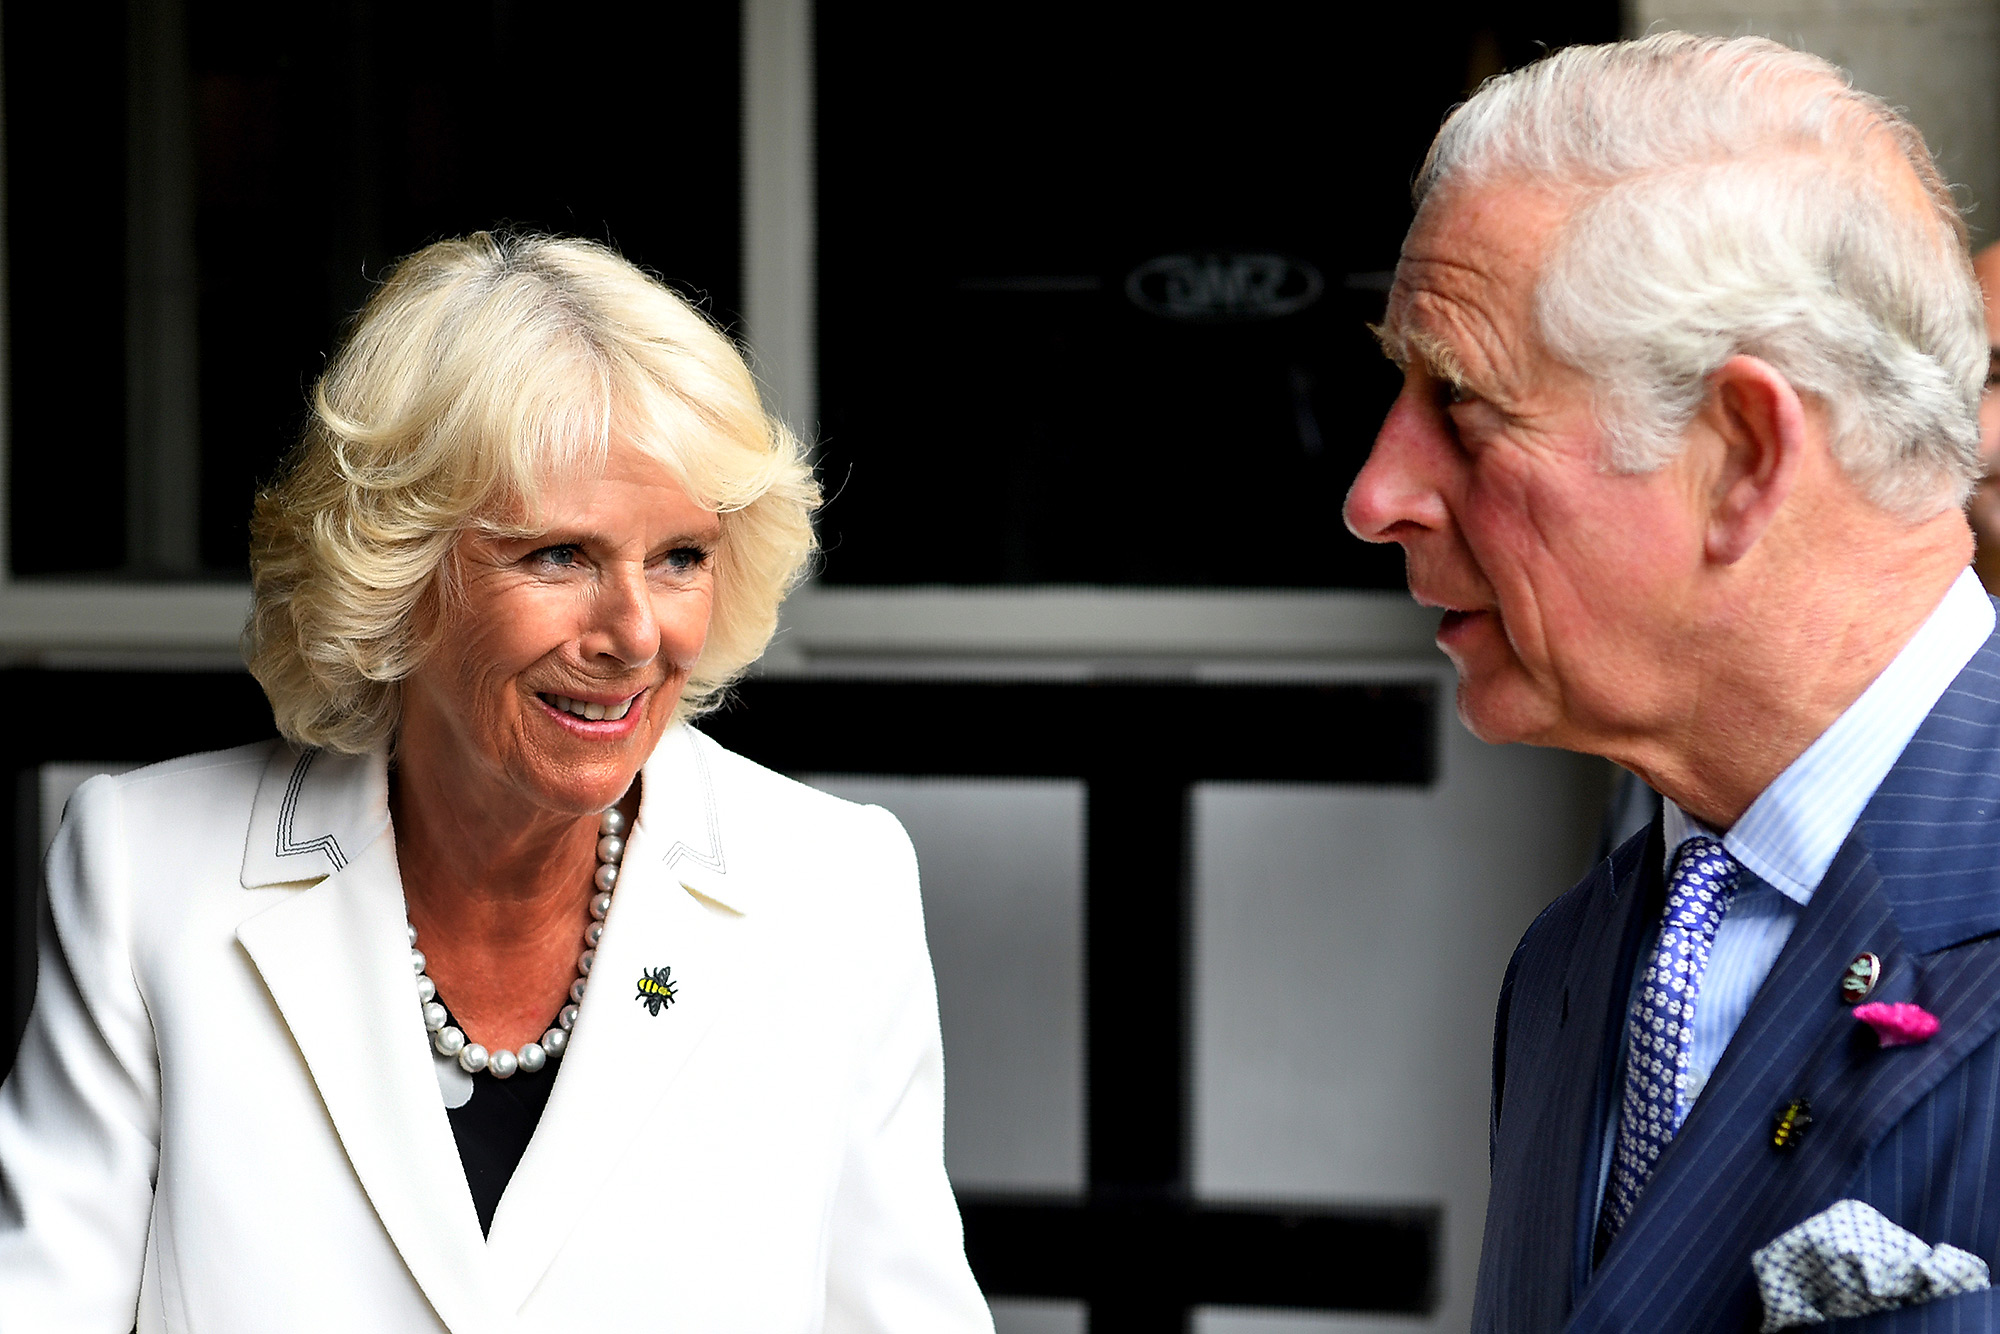 The Prince Of Wales And Duchess Of Cornwall Visit The Manchester Arena